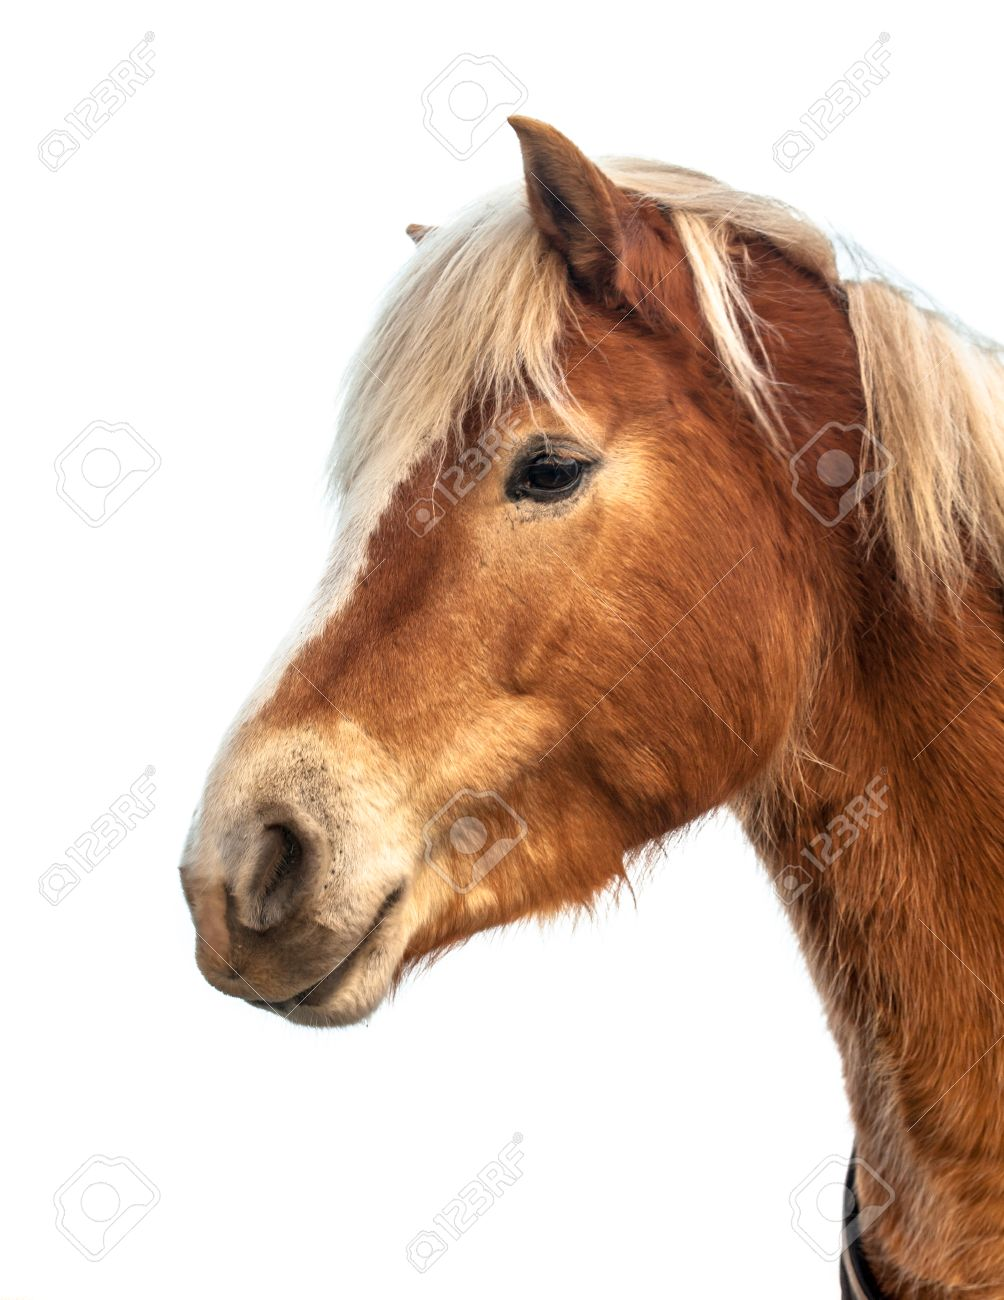 Head Of A Cute Horse On White Background Horses And Humans Interact Stock Photo Picture And Royalty Free Image Image 39319803